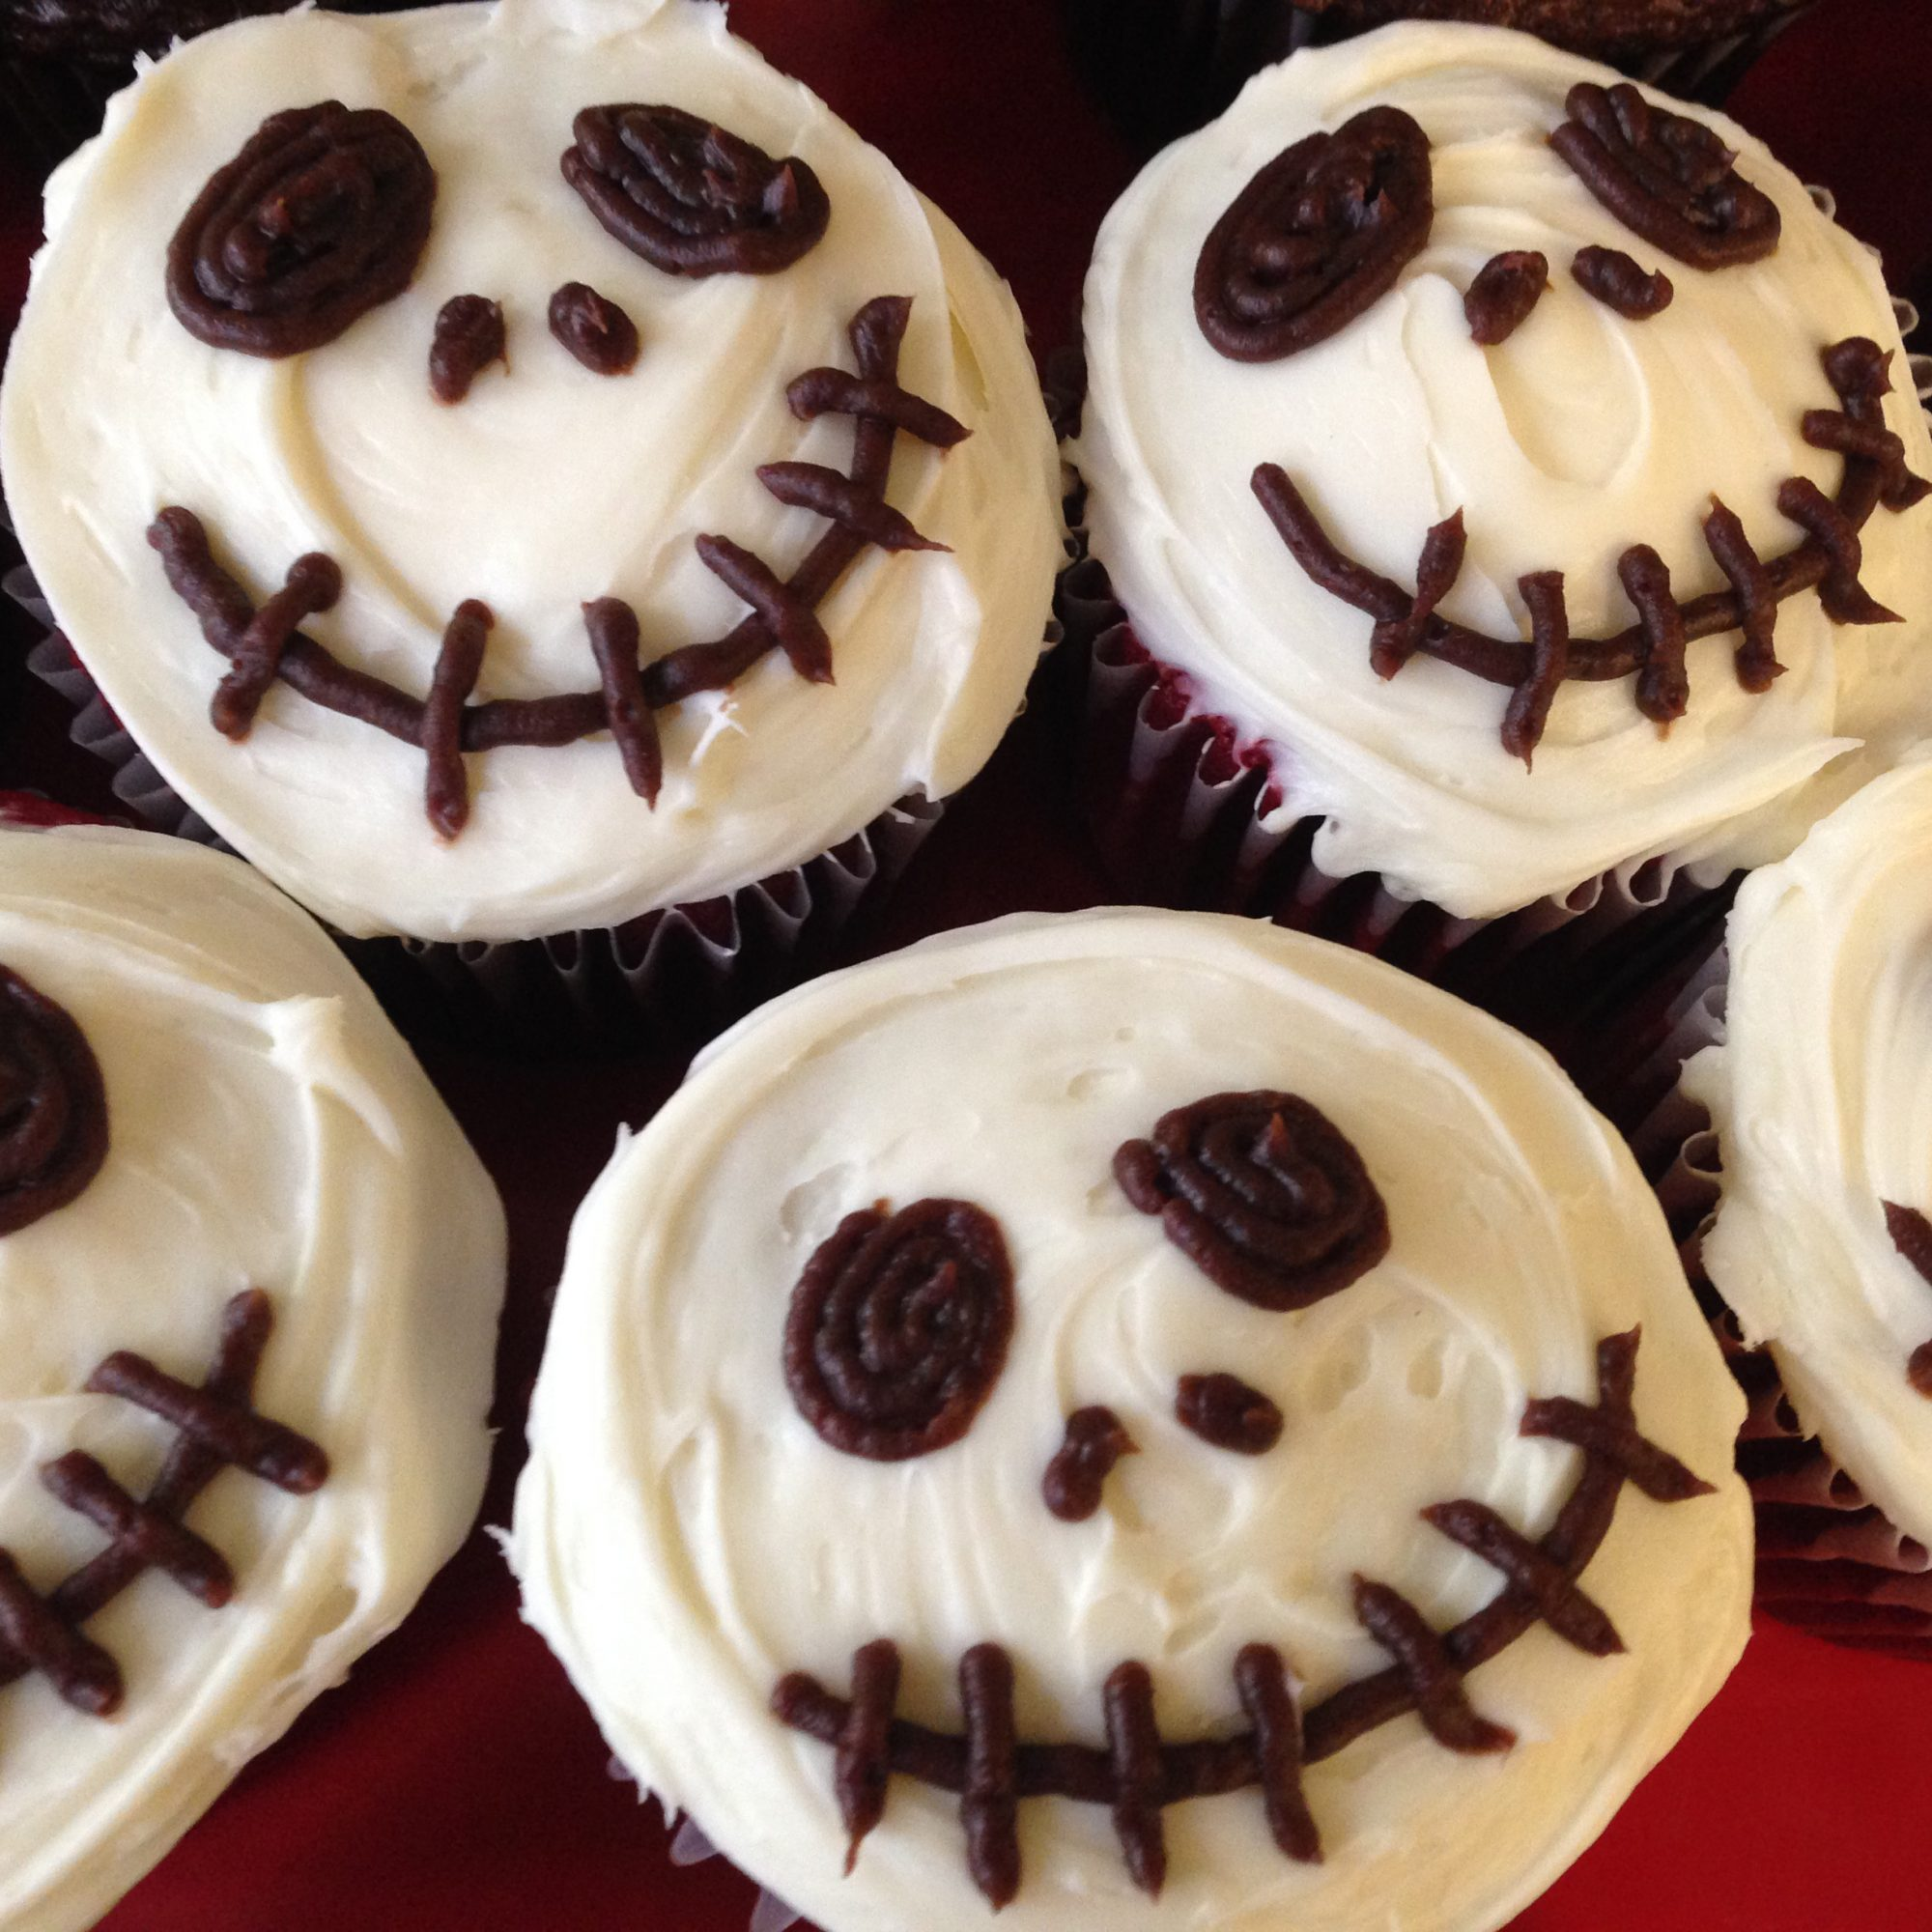 Creepy Halloween Skull Cupcakes on a red background